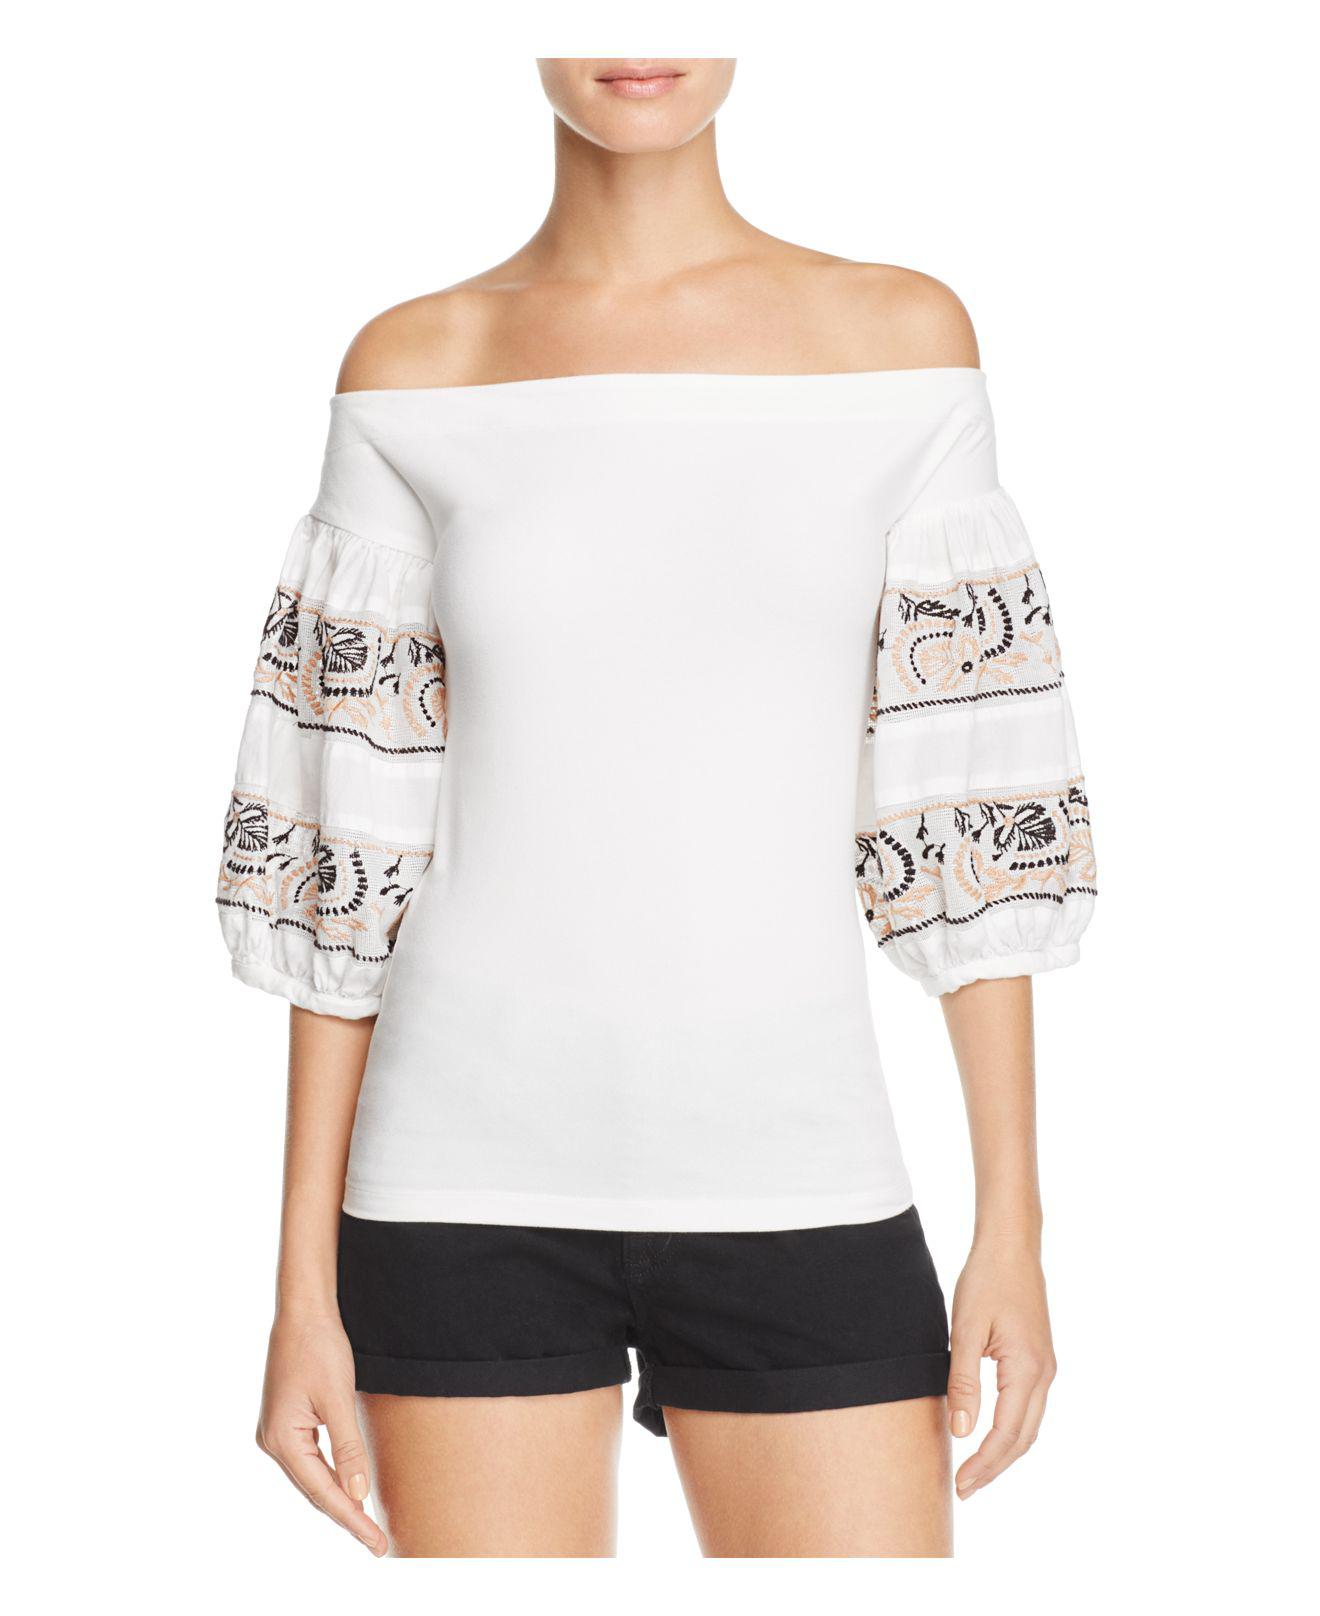 19c95d0bea359 Lyst - Free People Rock With It Embroidered Off-the-shoulder Top in ...